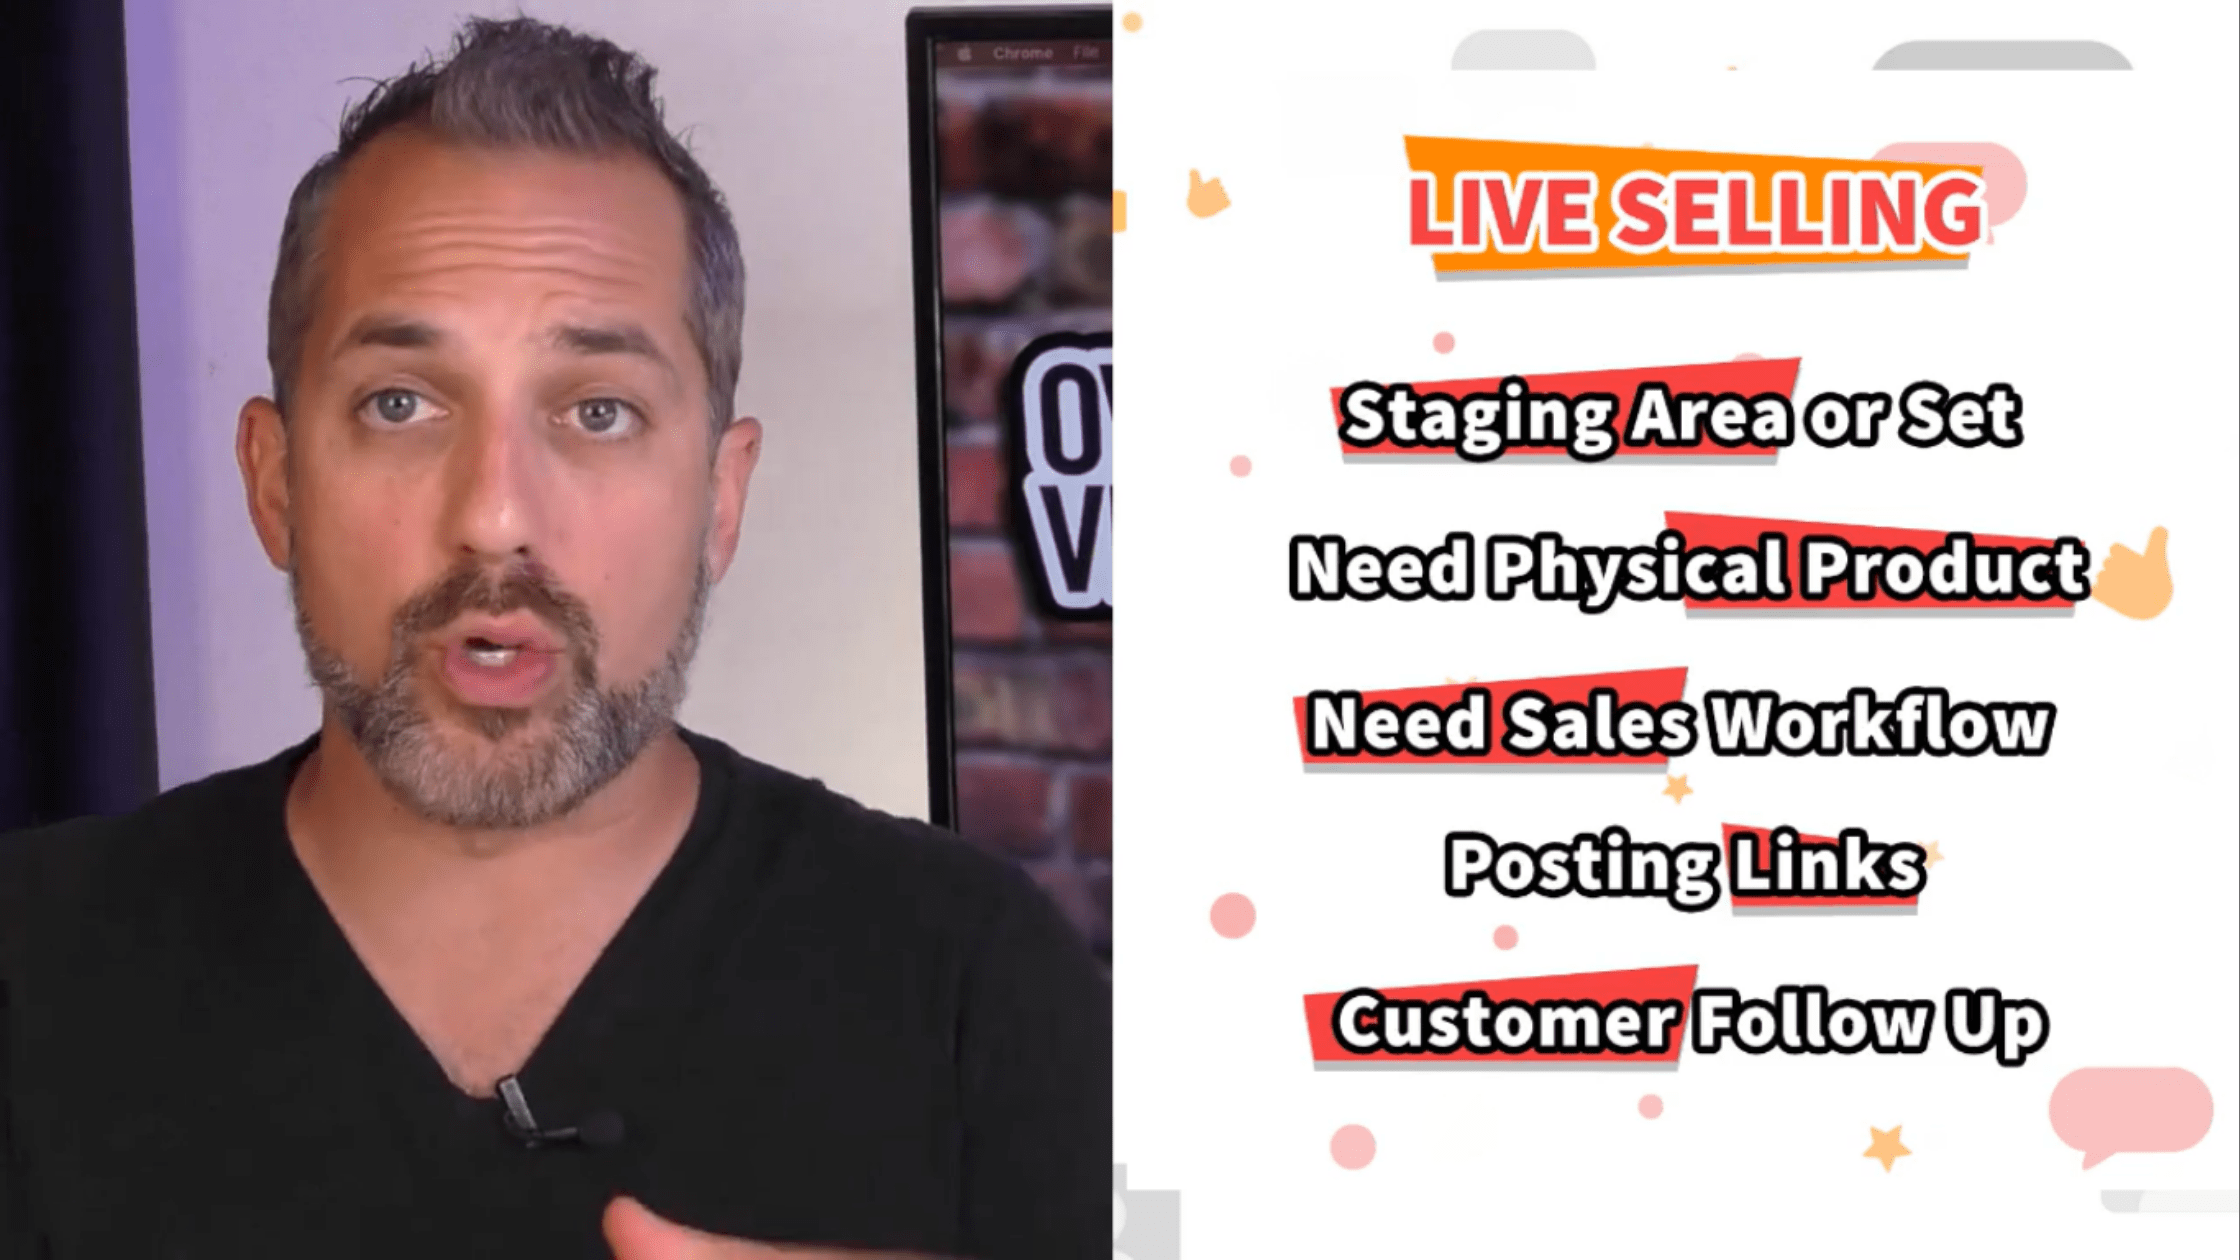 live-show-types-business-marketing-plans-live-selling-belive-weekly